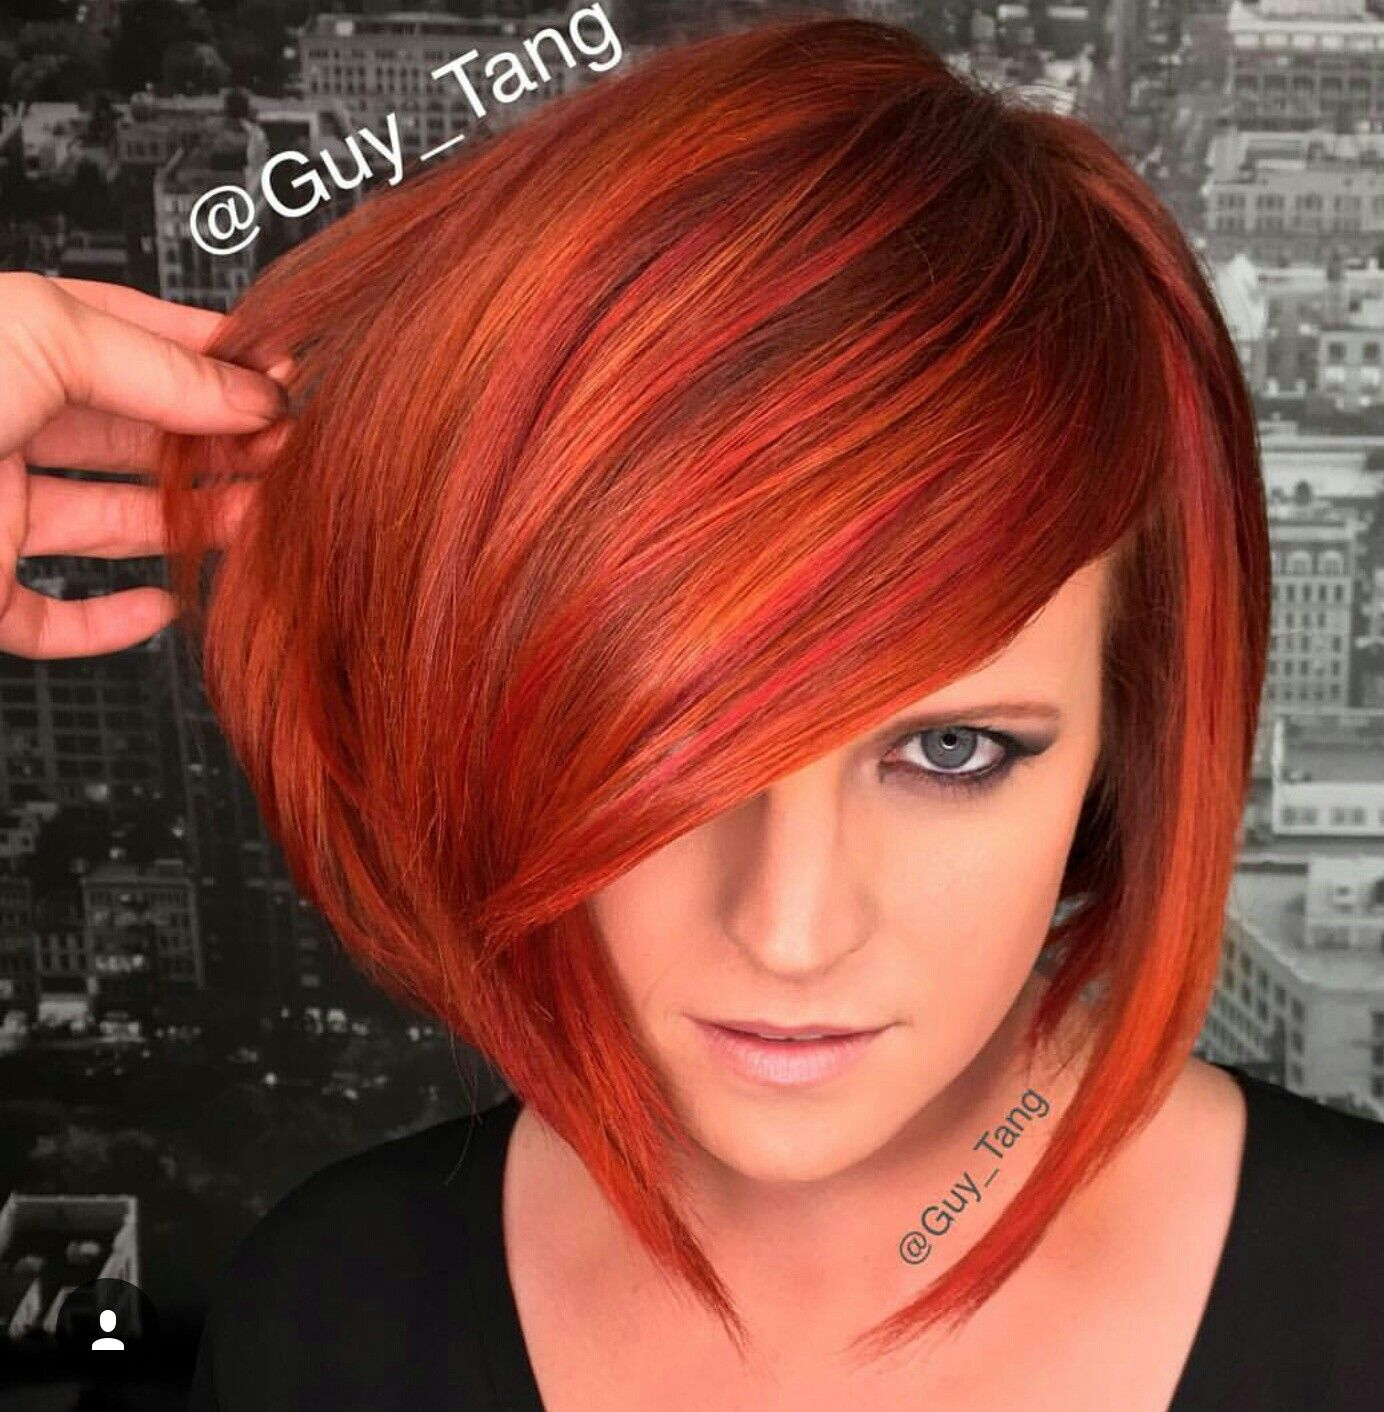 Colorful short bob hairstyle, very pretty colors!  Short hair